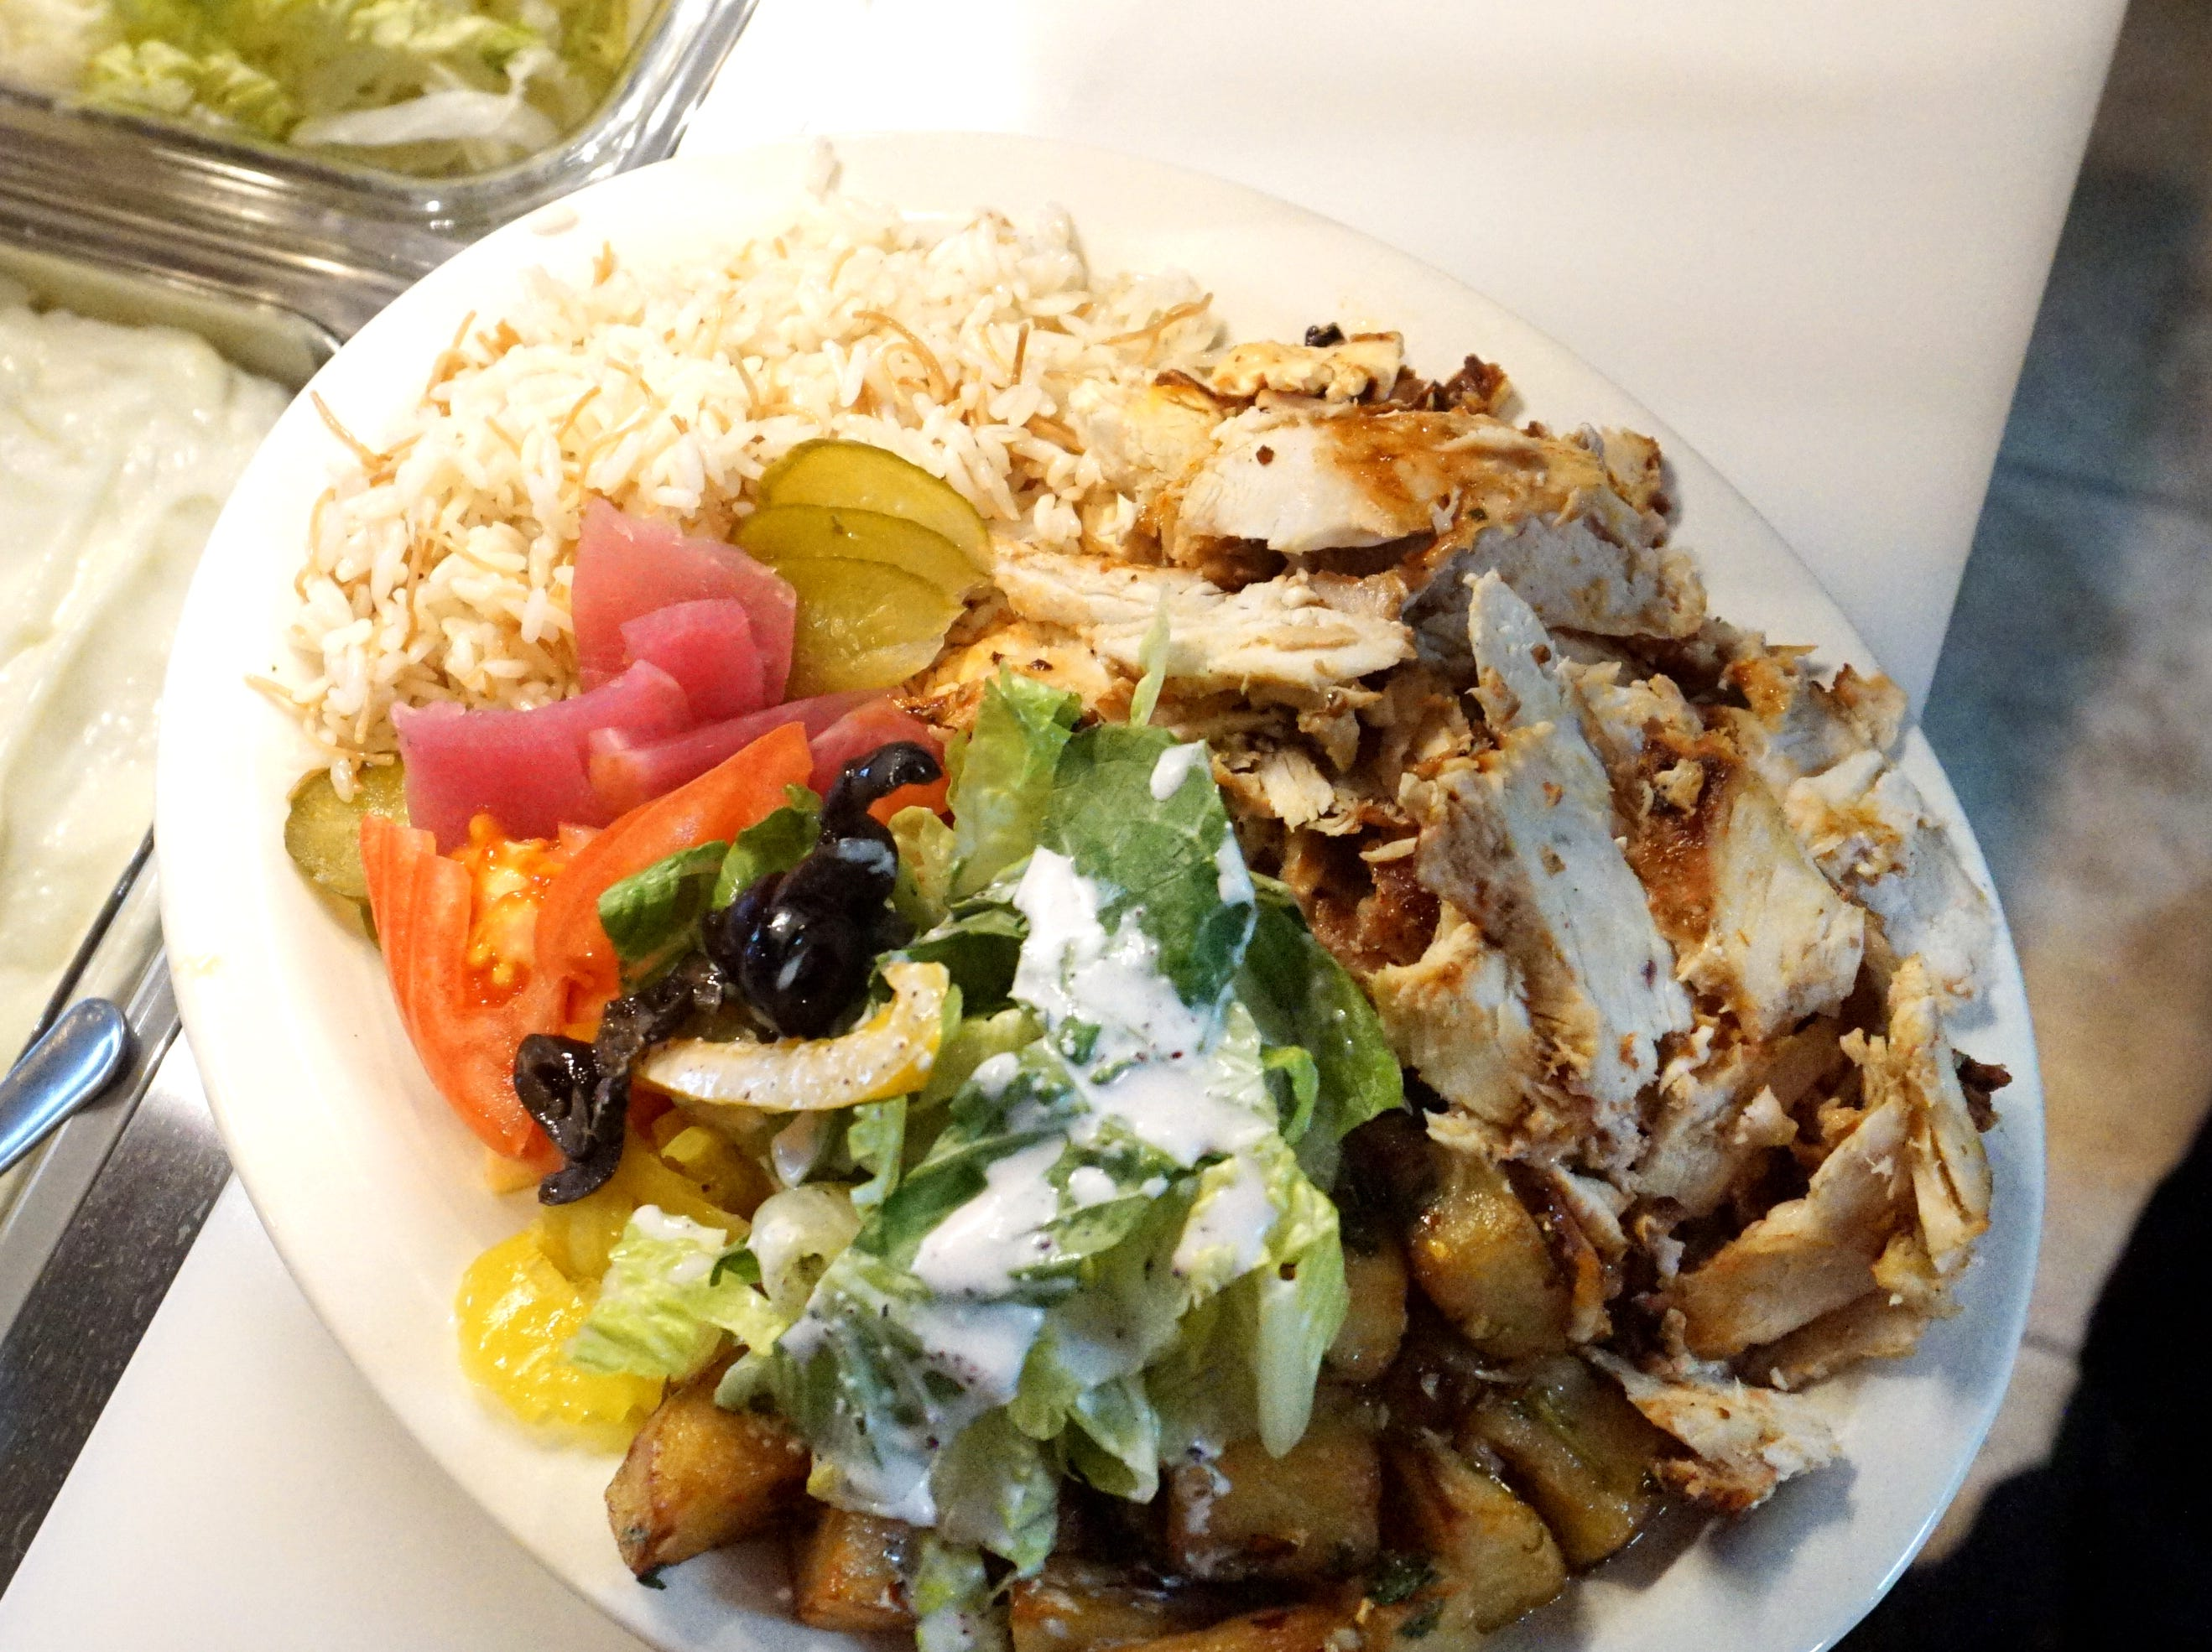 The chicken shawarma meal with rice, herbed potatoes and vegetables.